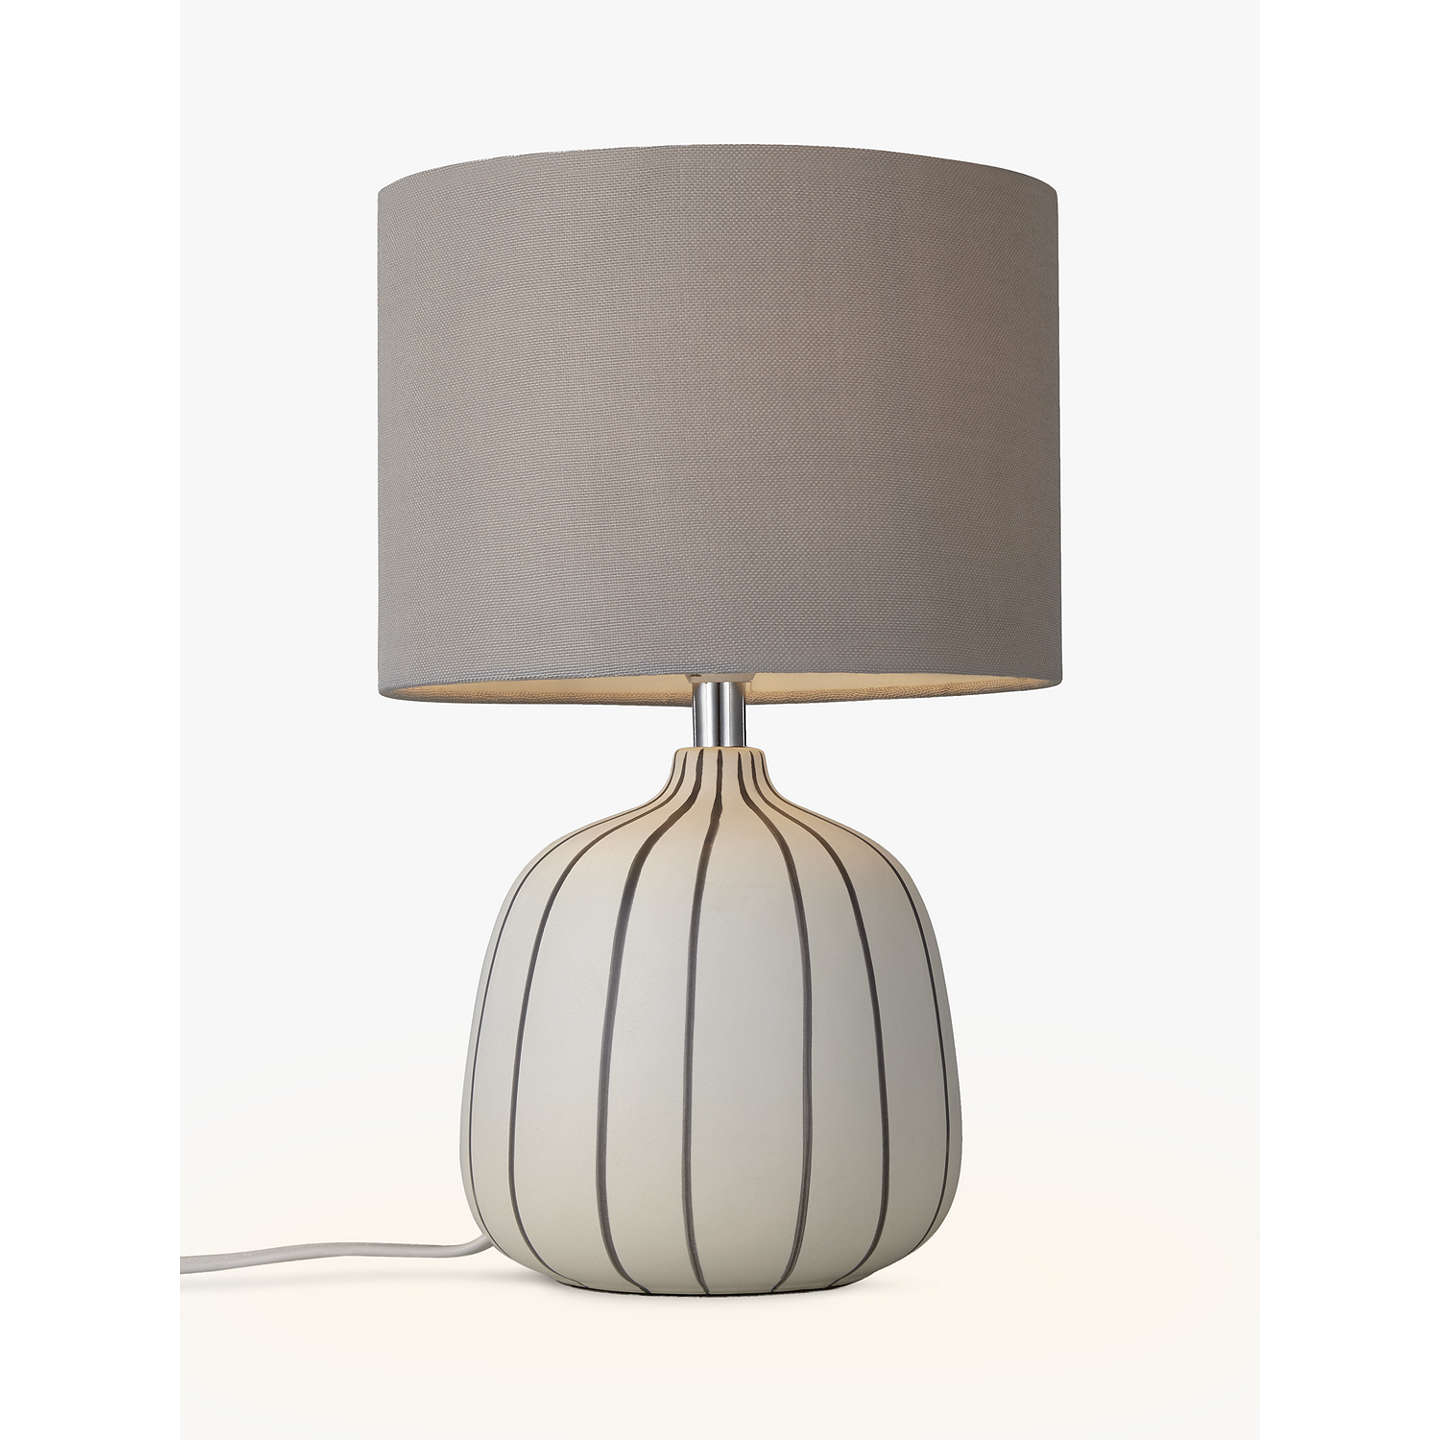 John lewis candy table lamp at john lewis buyjohn lewis candy table lamp online at johnlewis aloadofball Gallery